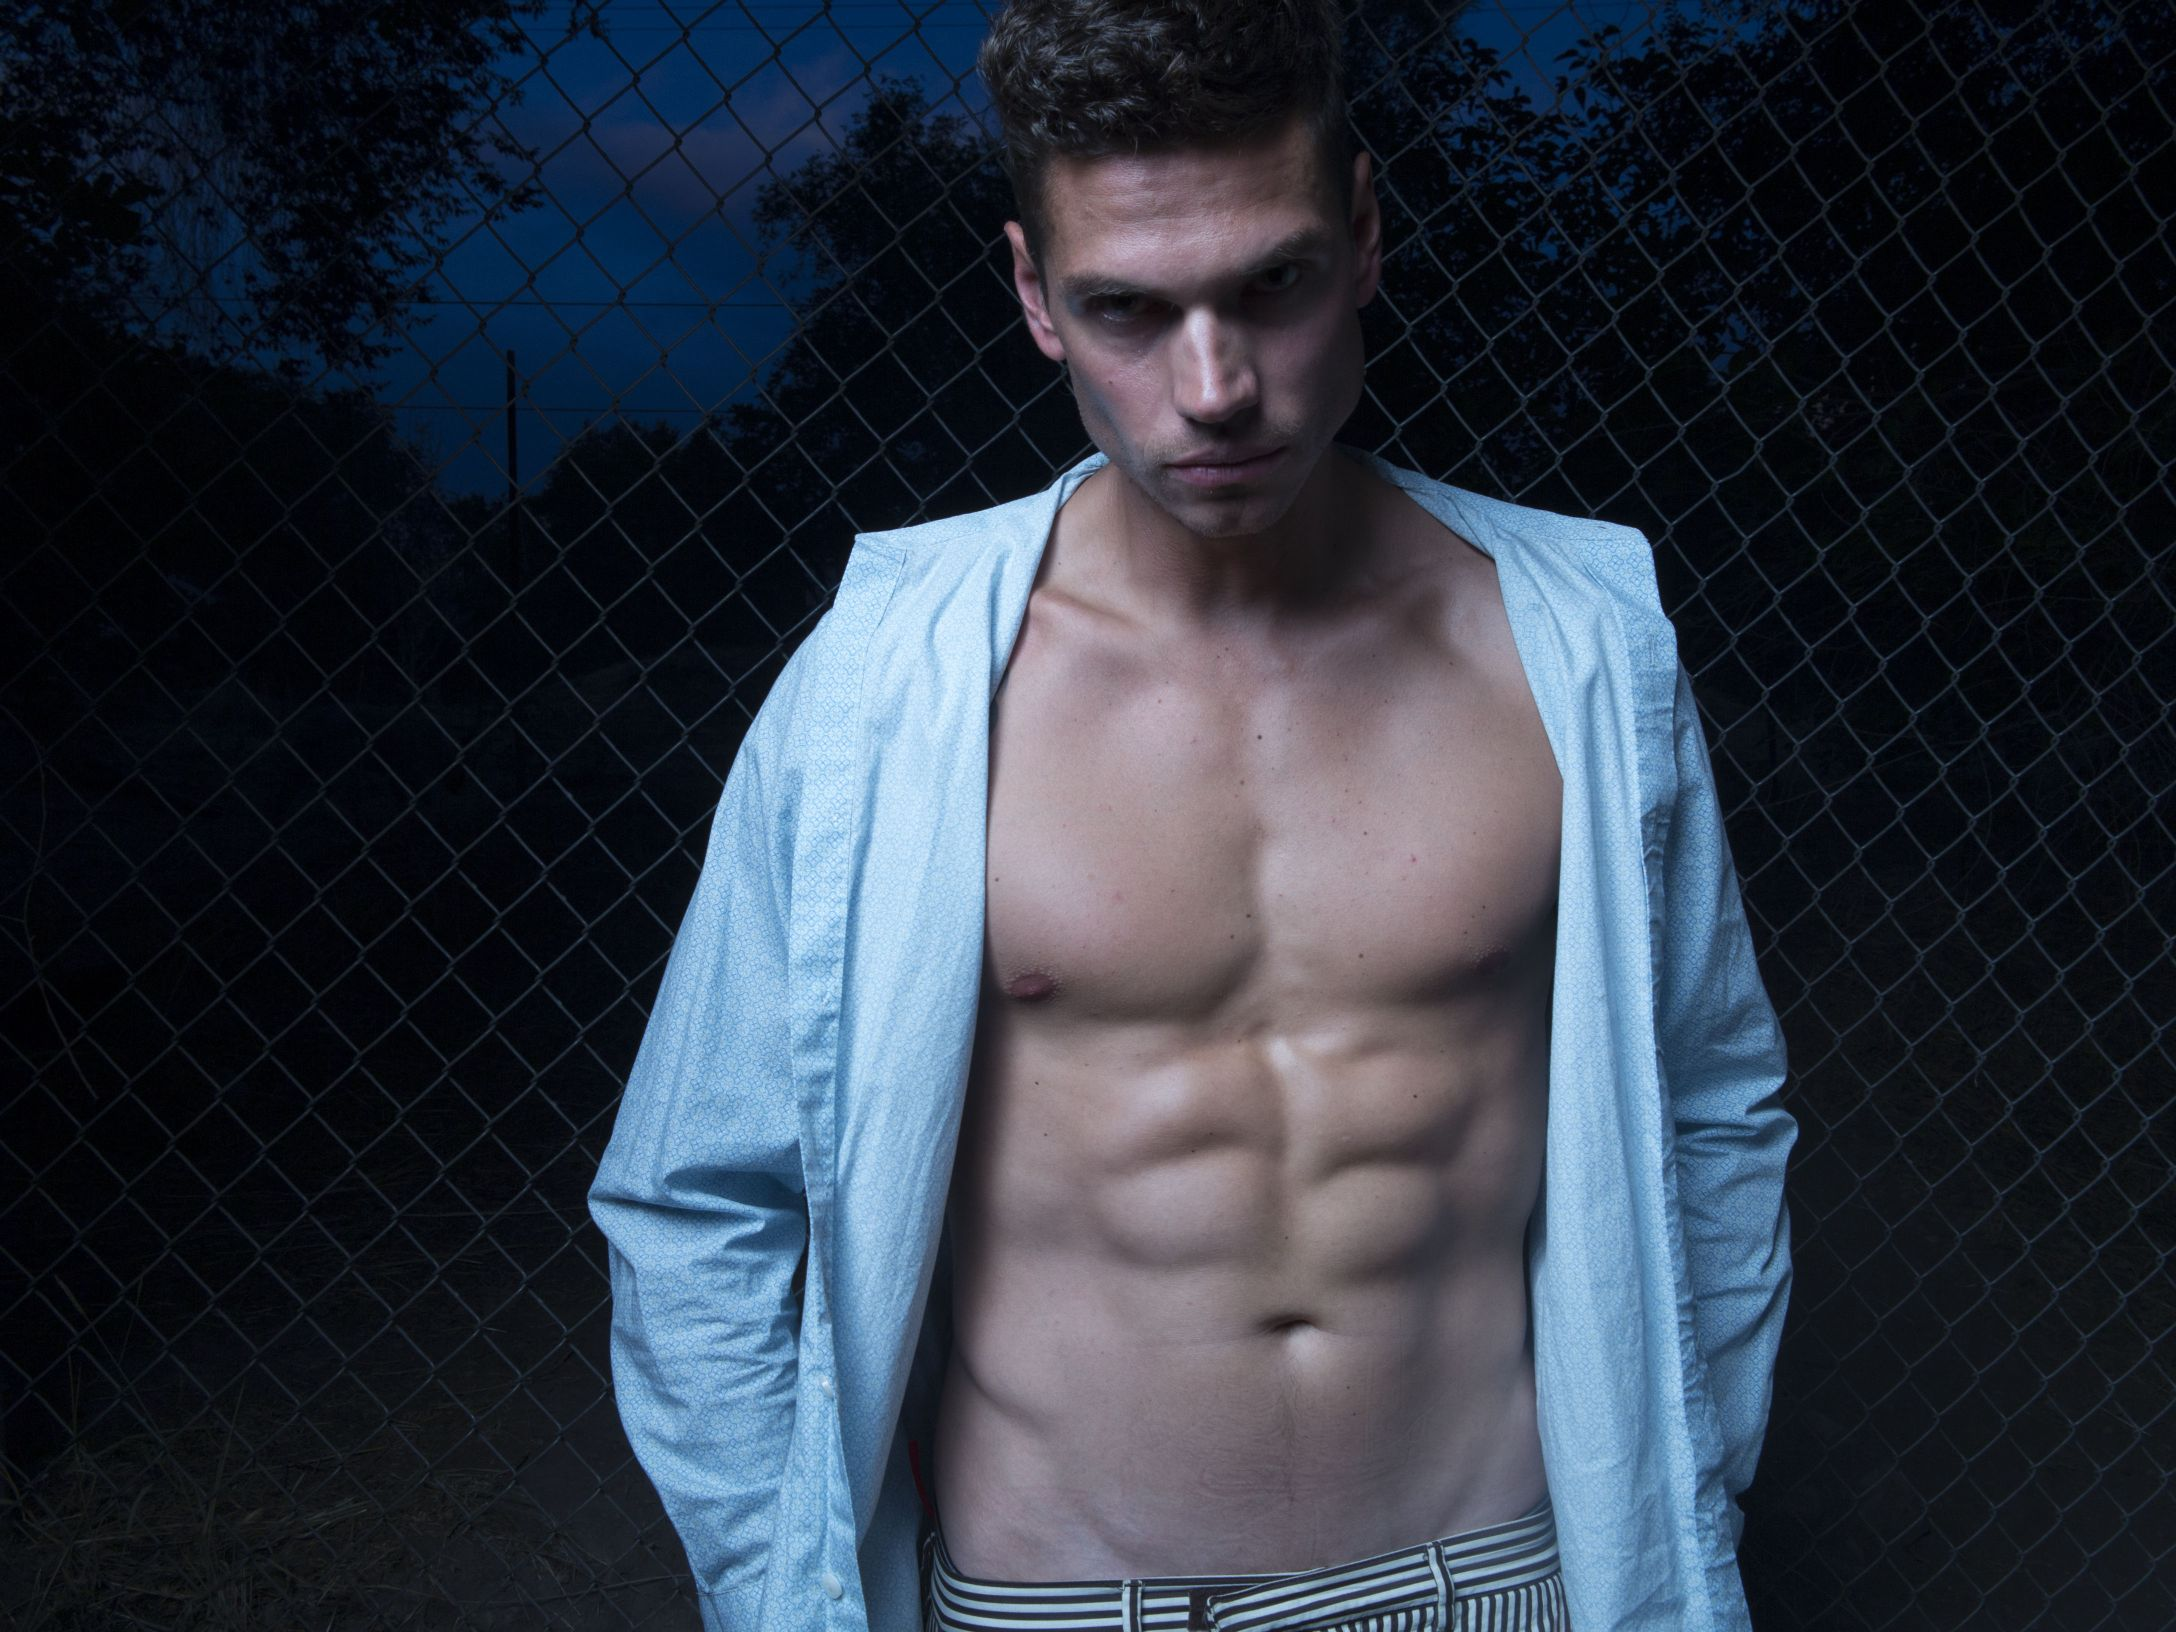 modeling agencies in nyc for men